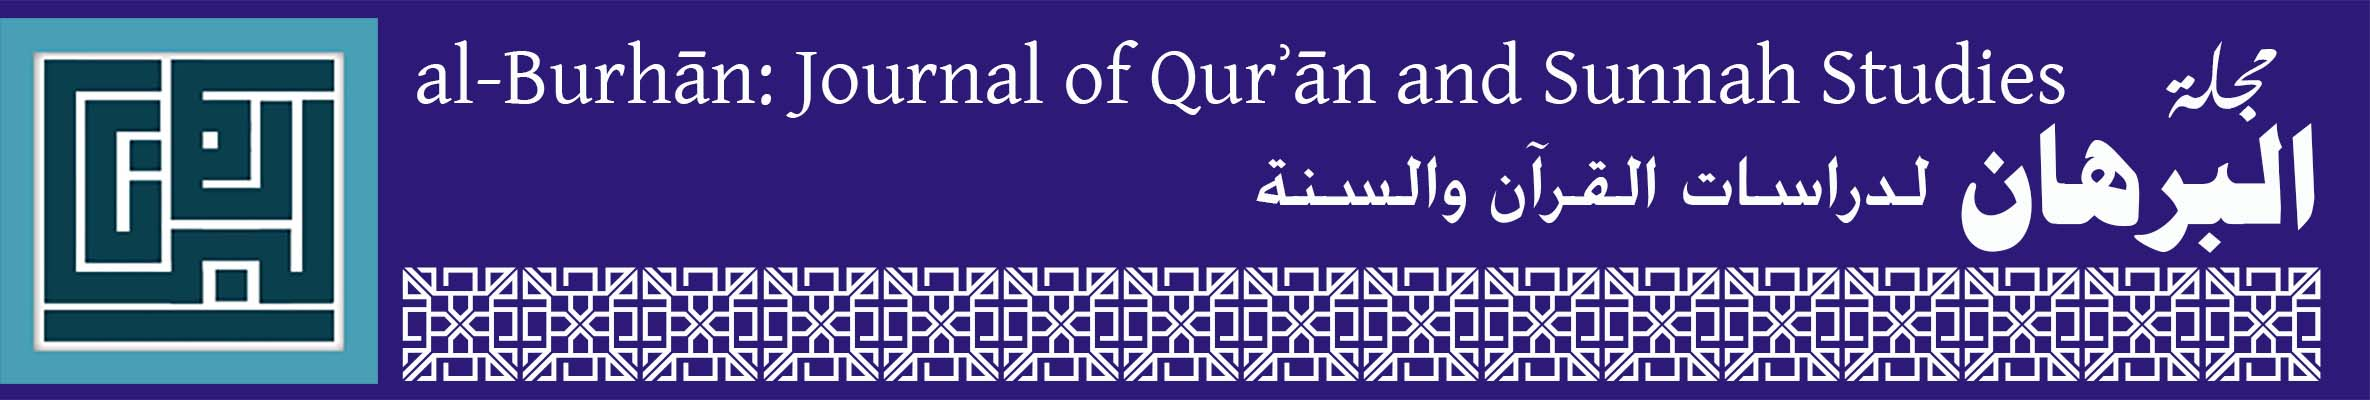 al-Burhān Journal of Qurʾān and Sunnah Studies